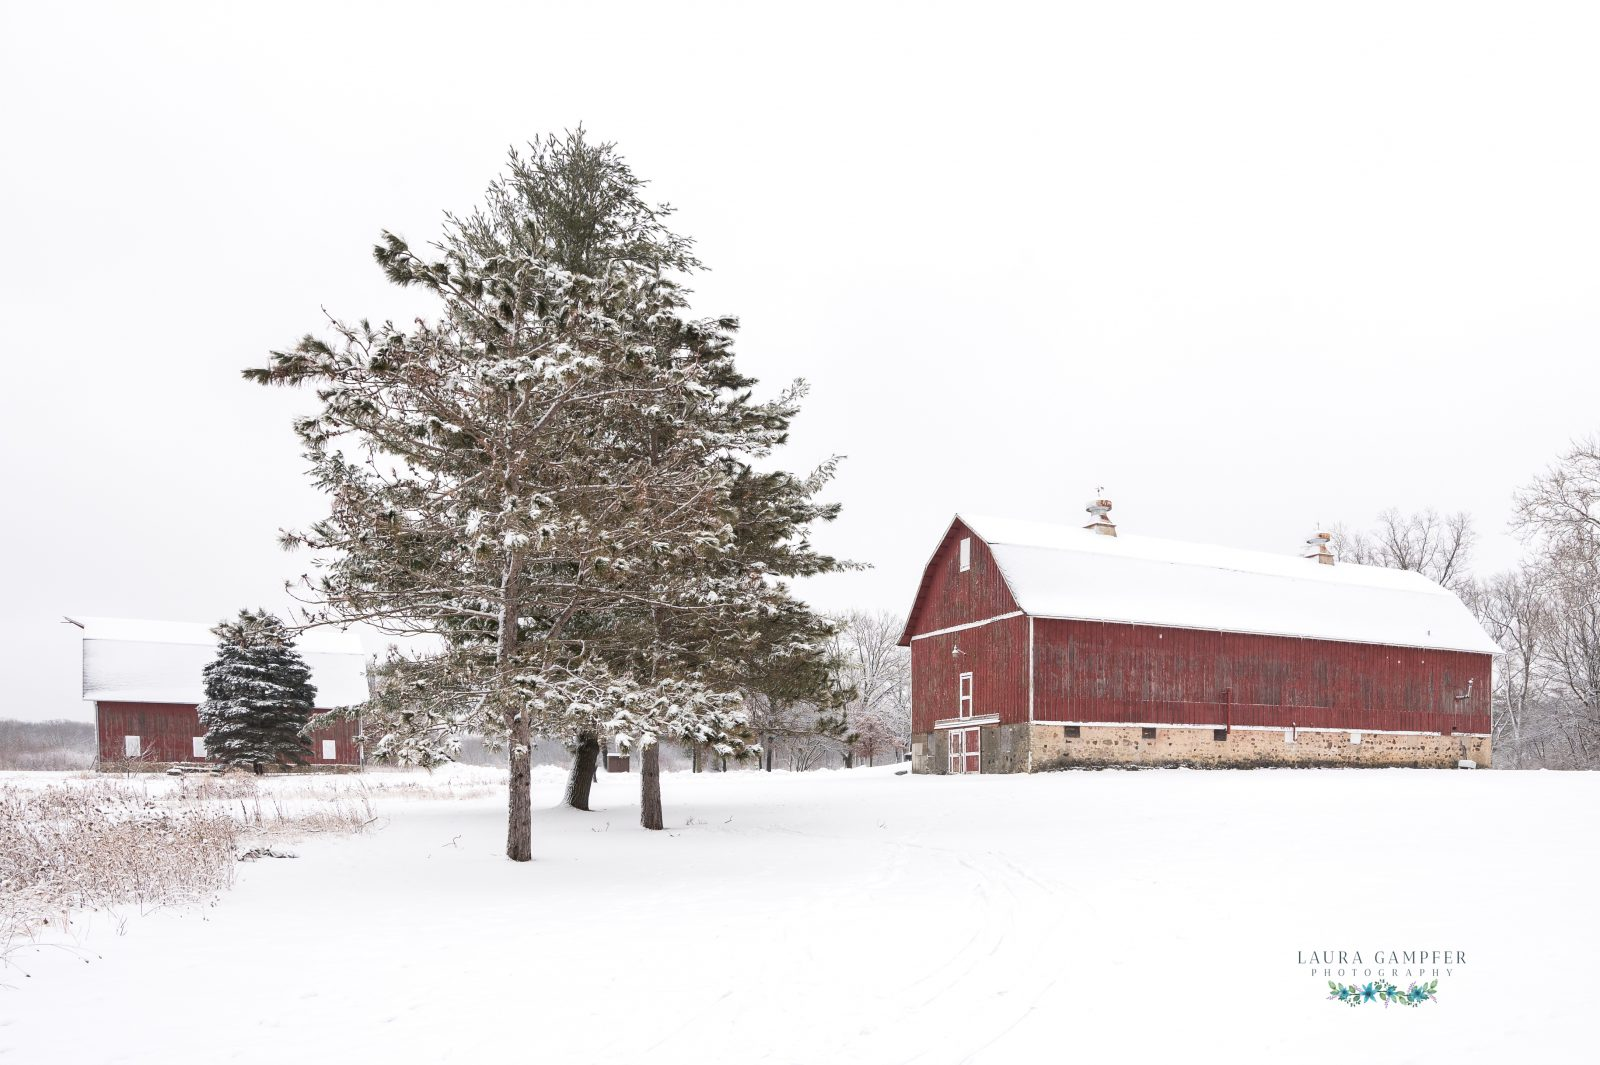 The Red Barns in Fresh Snow